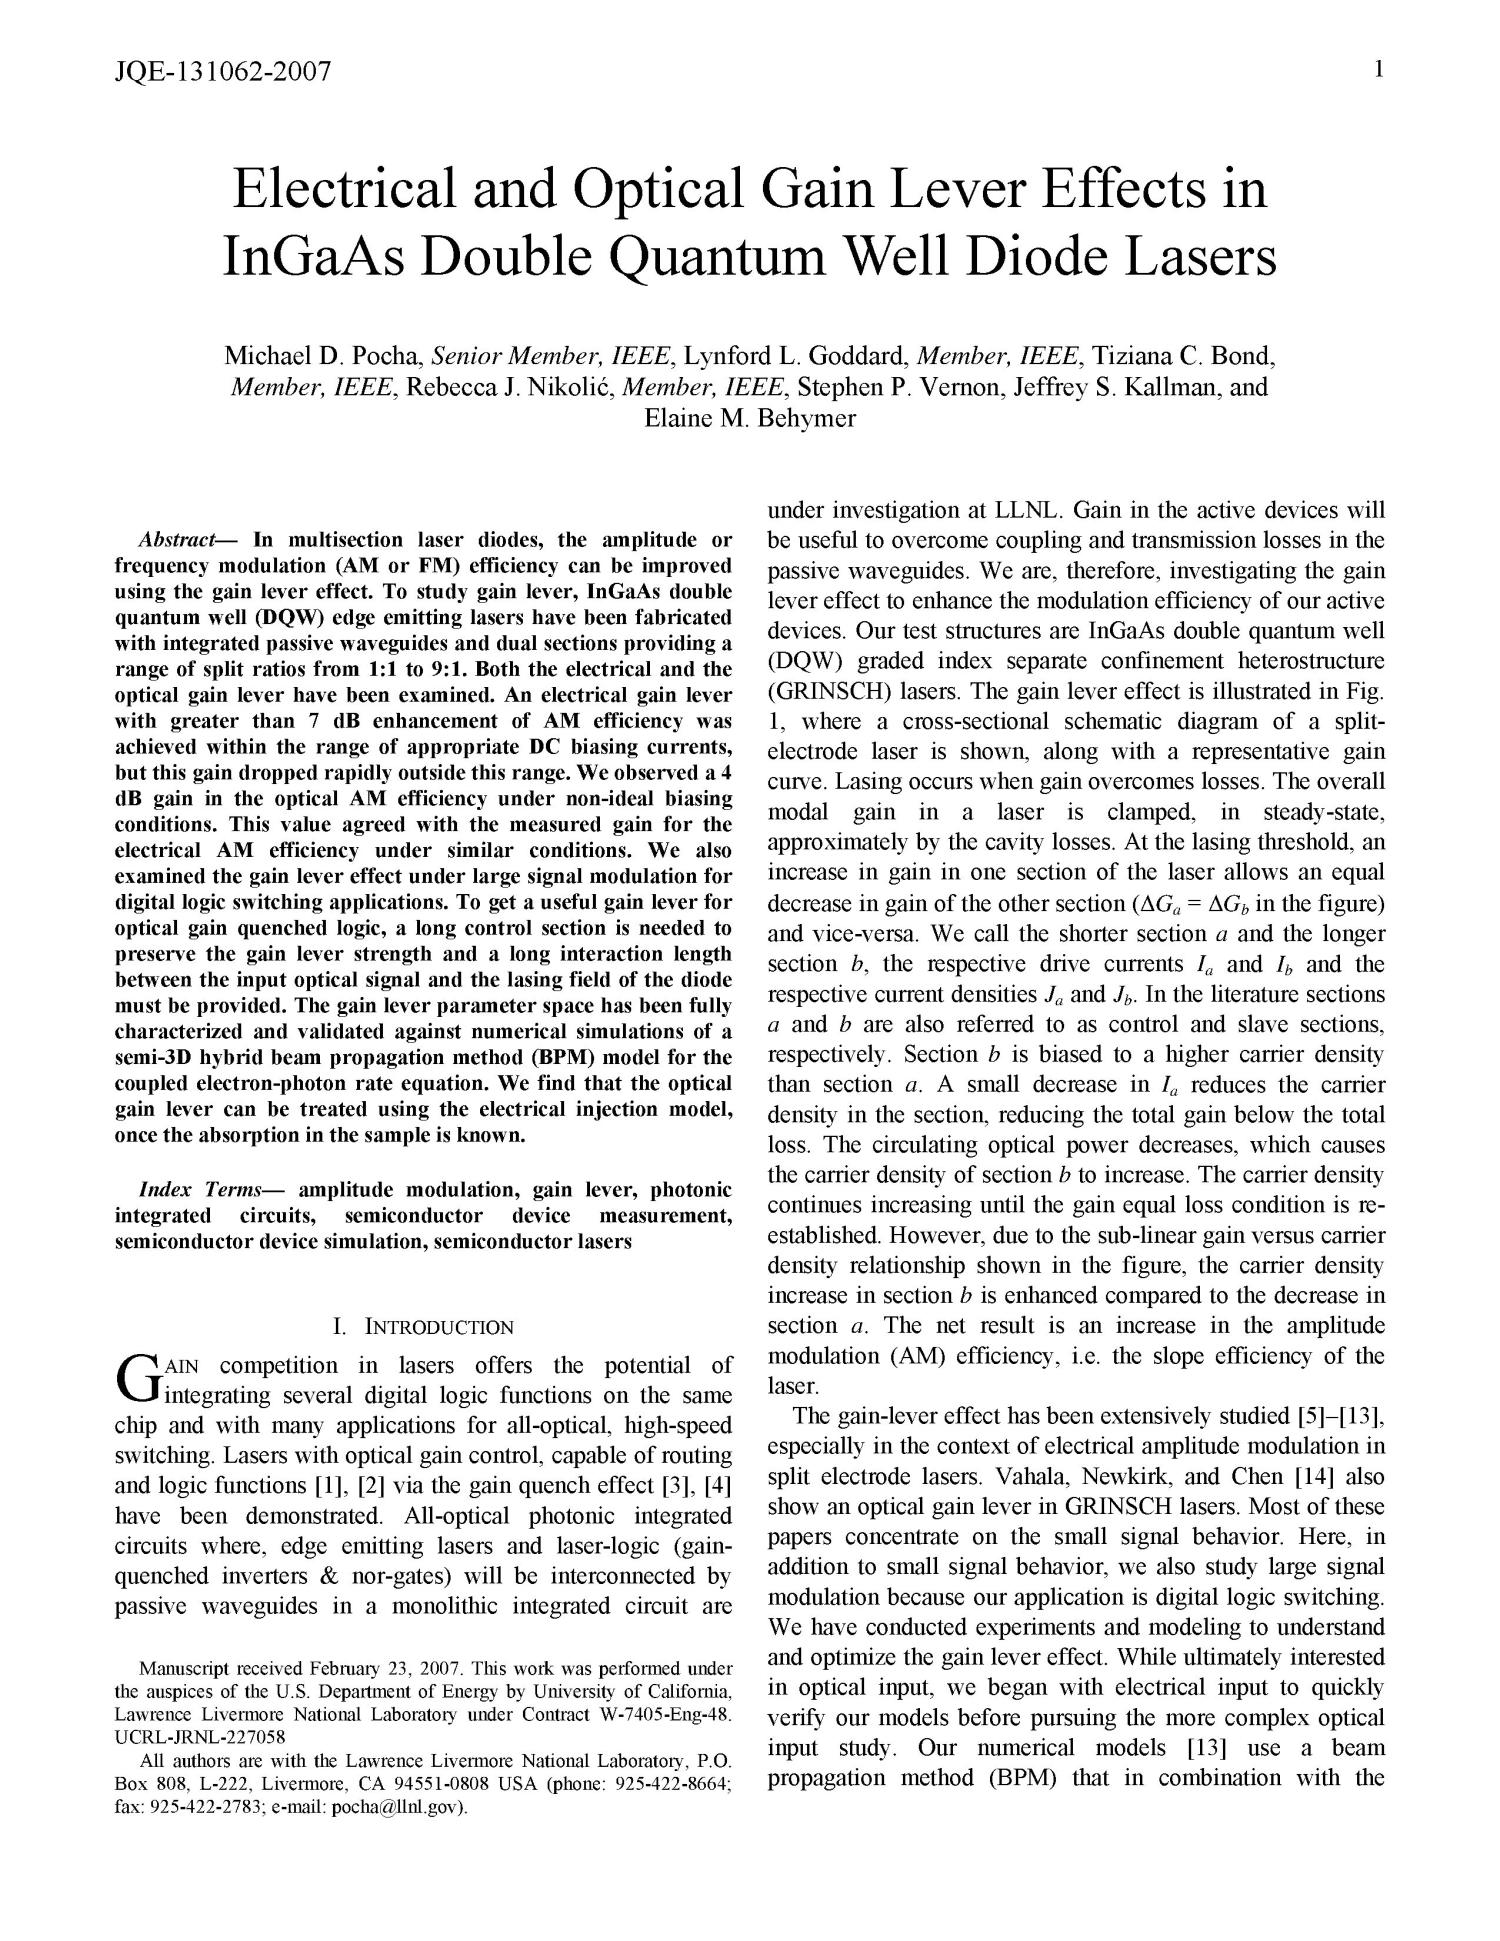 Electrical and Optical Gain Lever Effects in InGaAs Double Quantum Well Diode Lasers                                                                                                      [Sequence #]: 3 of 12